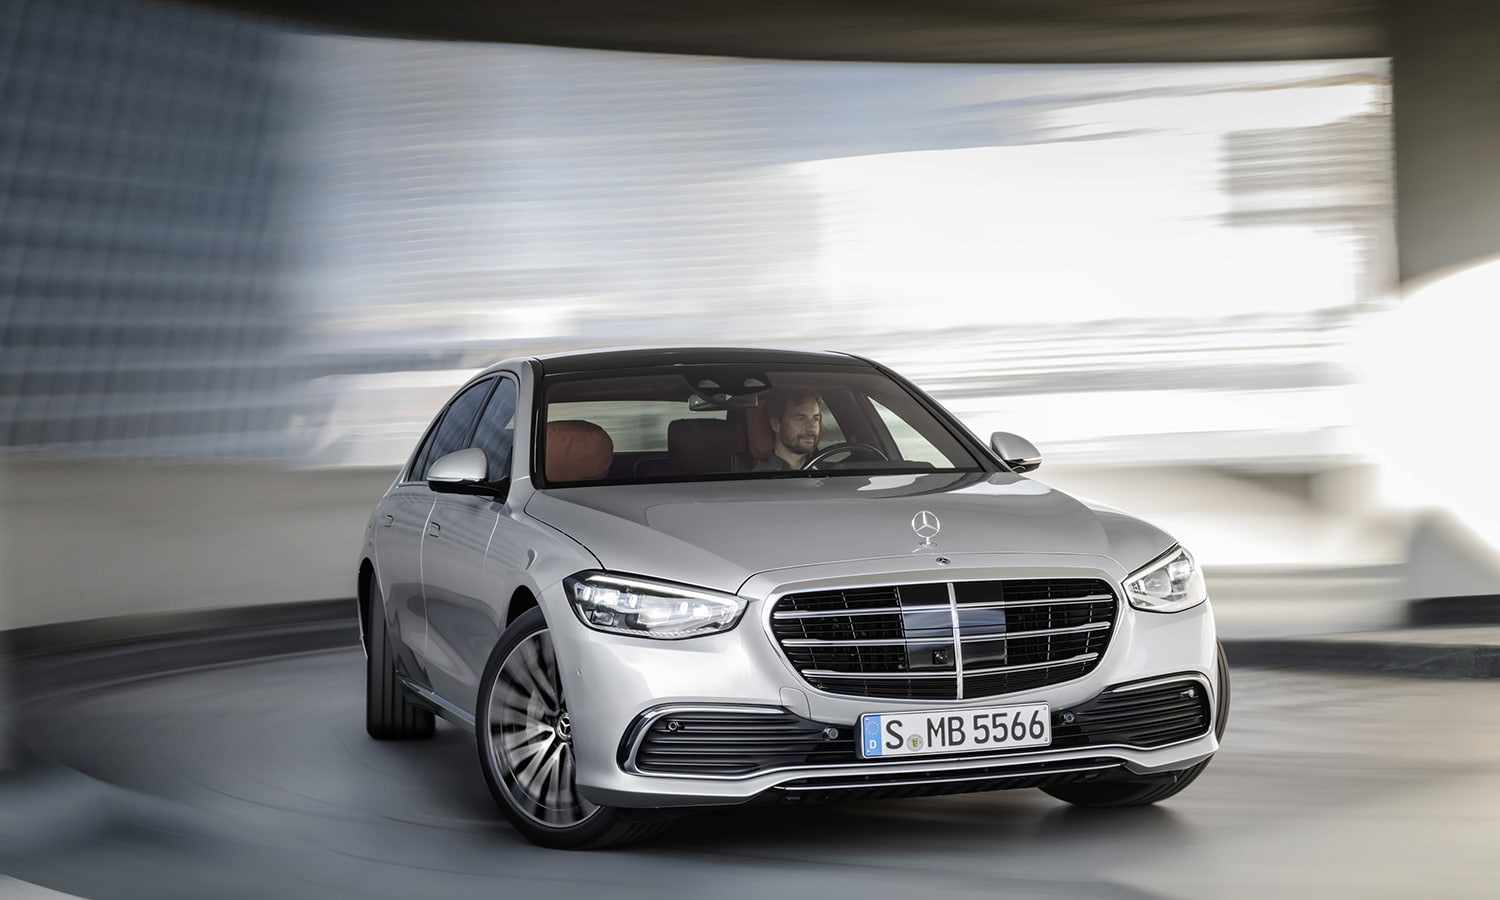 Mercedes Clase S frontal